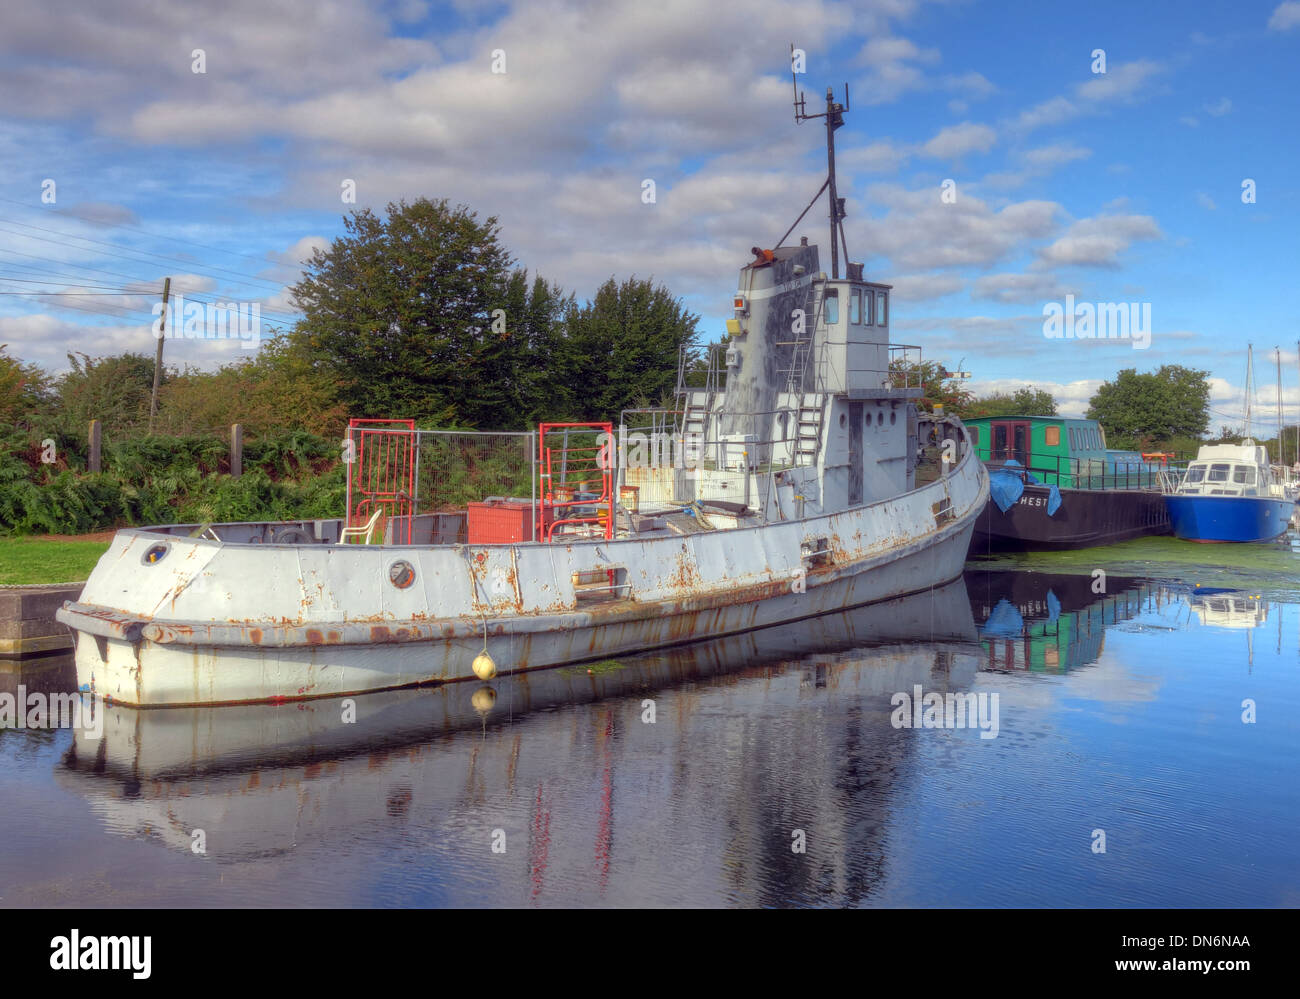 GB,Great,Britain,Boat,on,the,Sankey,Canal,Reflection,Warrington,Cheshire,England,UK,pano,panorama,wide,shot,widshot,summer,bright,day,Ferry,Tavern,marina,Mersey,safe,haven,safehaven,lock,gates,lockgates,gate,tidal,SCARS,waterway,waterways,restoration,quay,quays,club,pub,gray,ship,gotonysmith vision,Warringtonians,Buy Pictures of,Buy Images Of